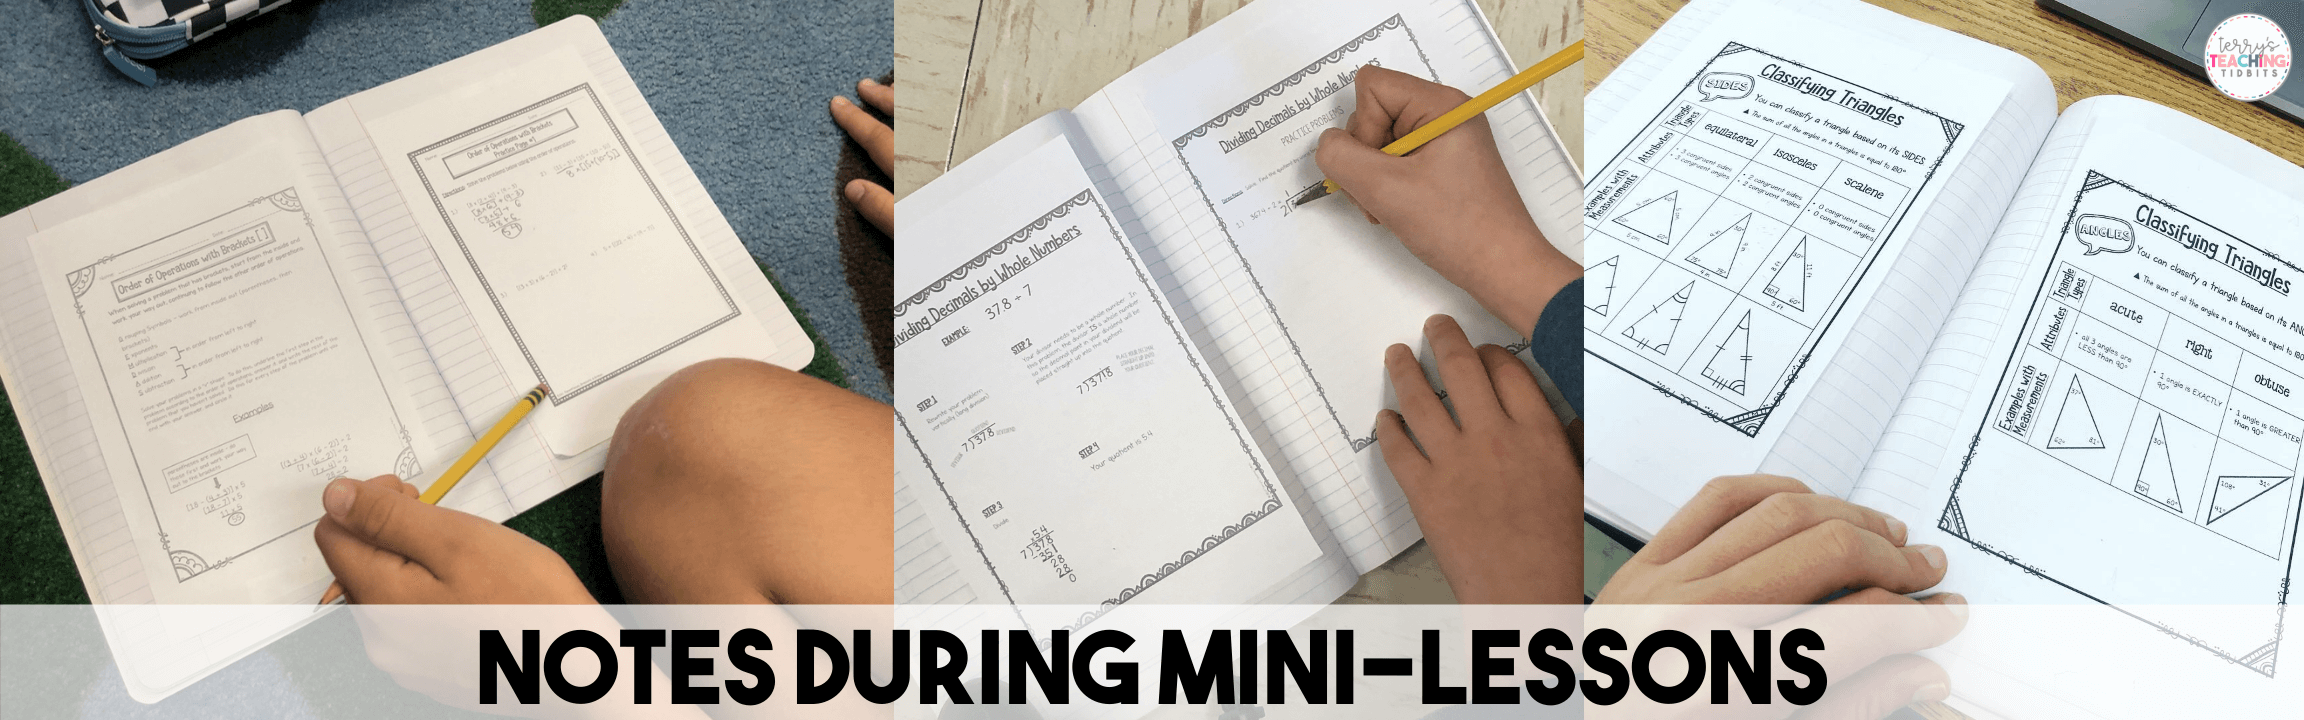 Notes during mini-lessons